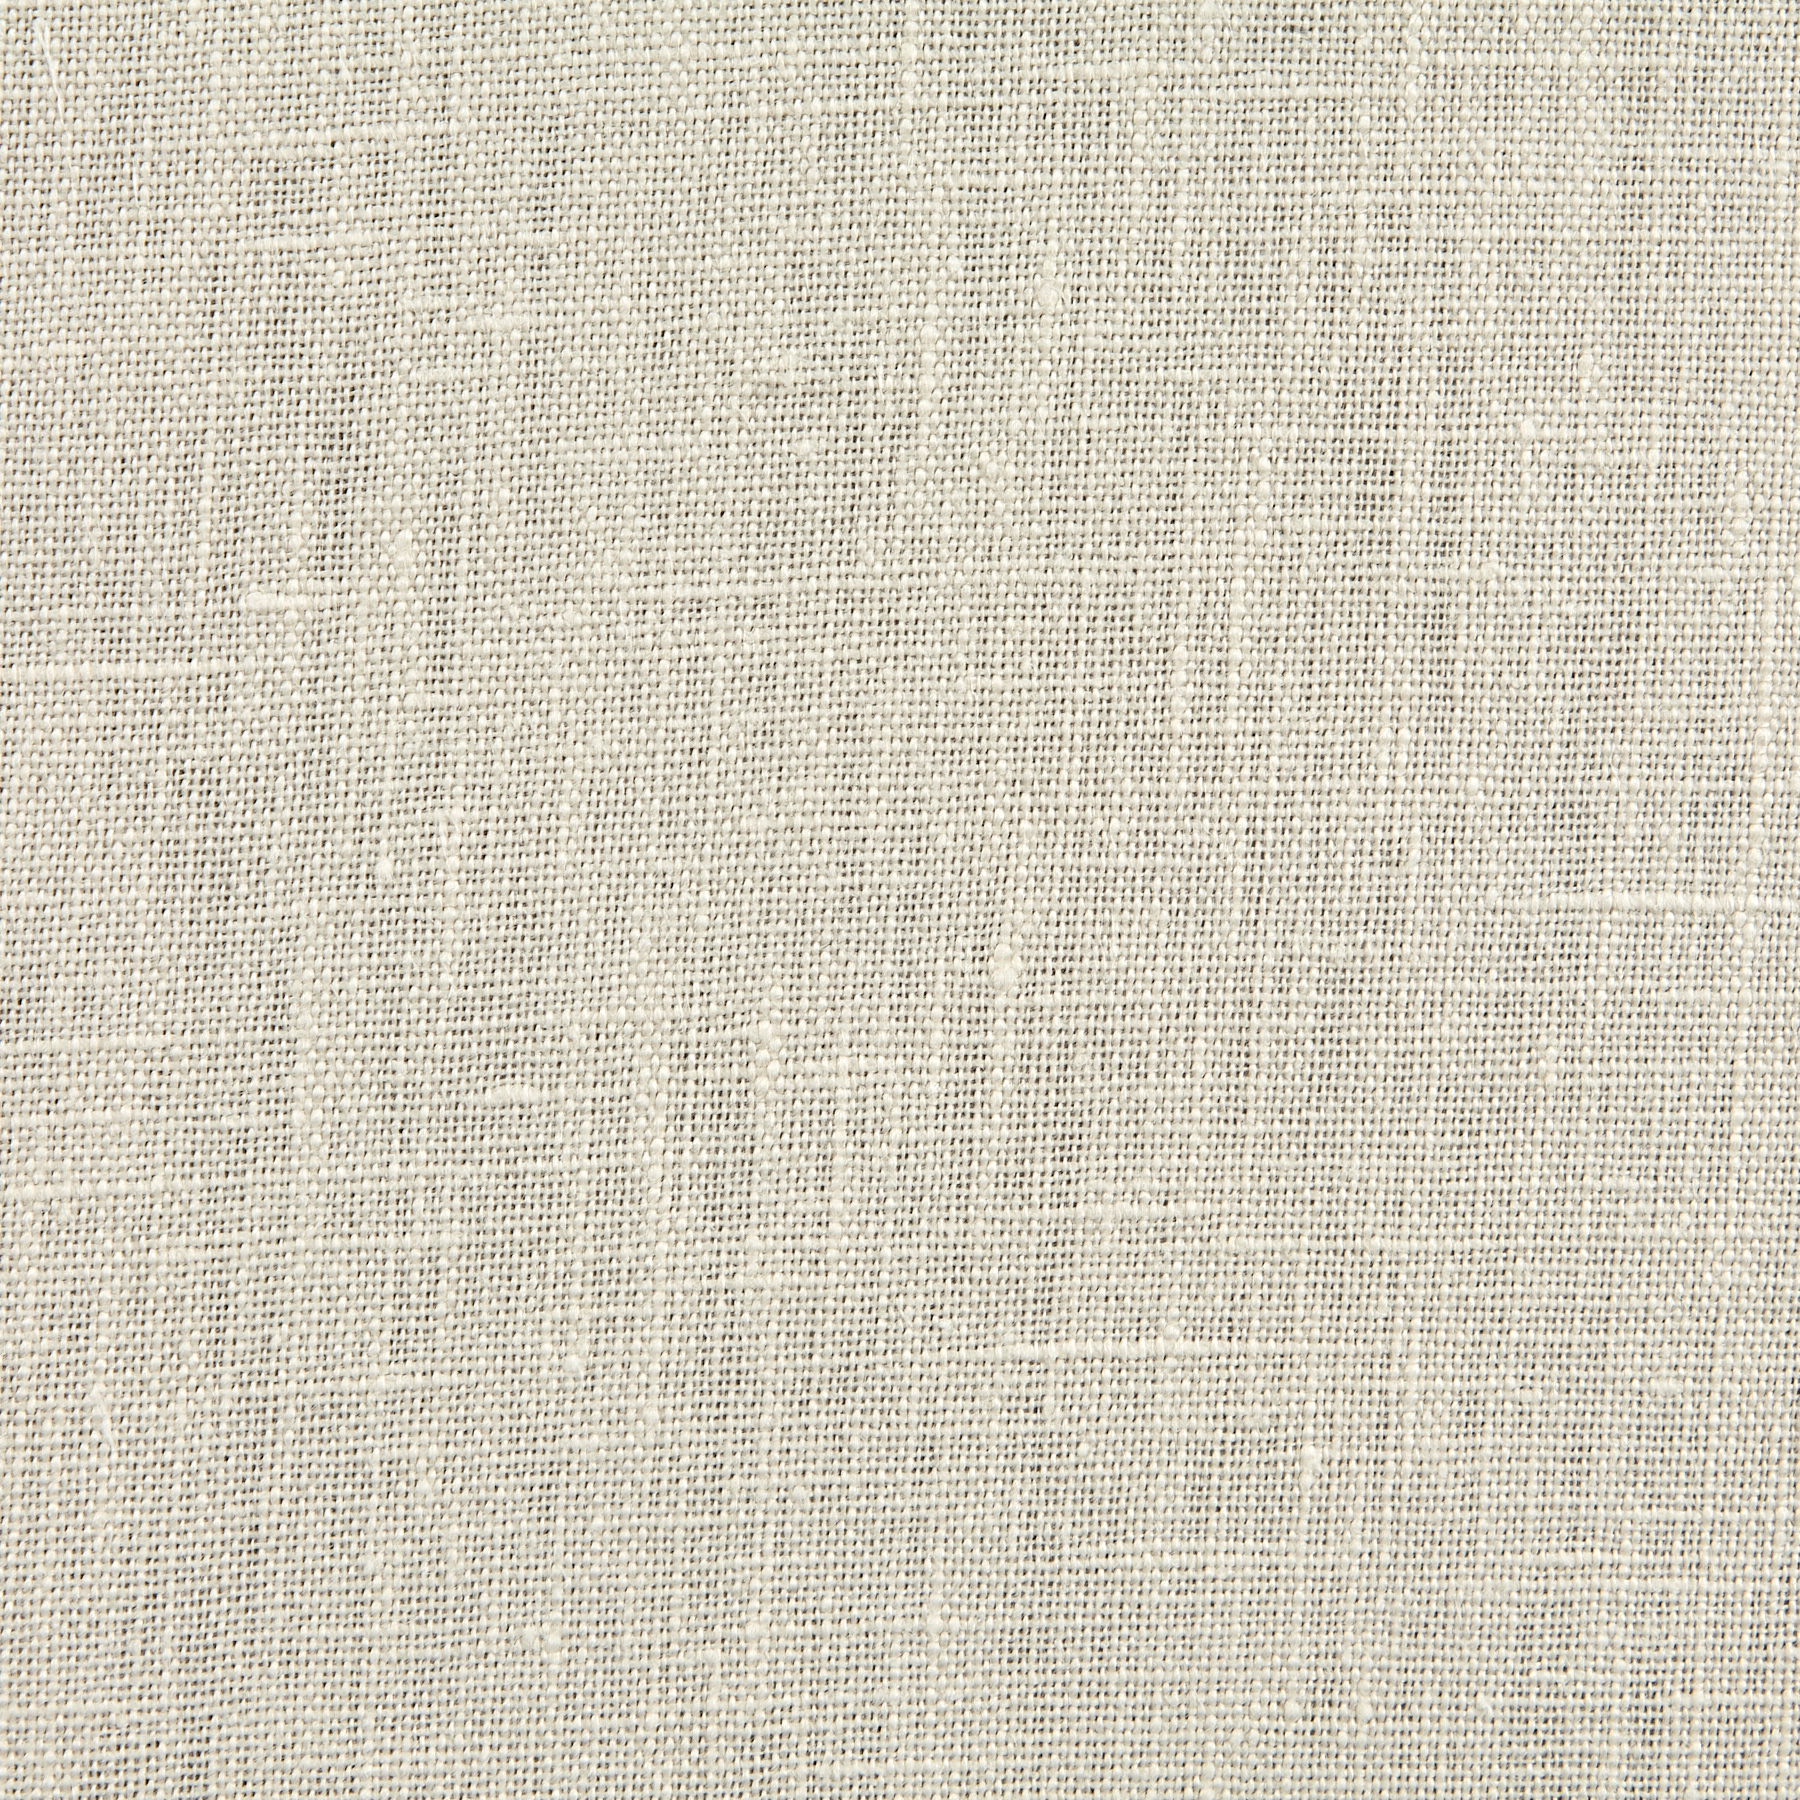 European 100% Washed Linen Eggshell Fabric by Noveltex in USA